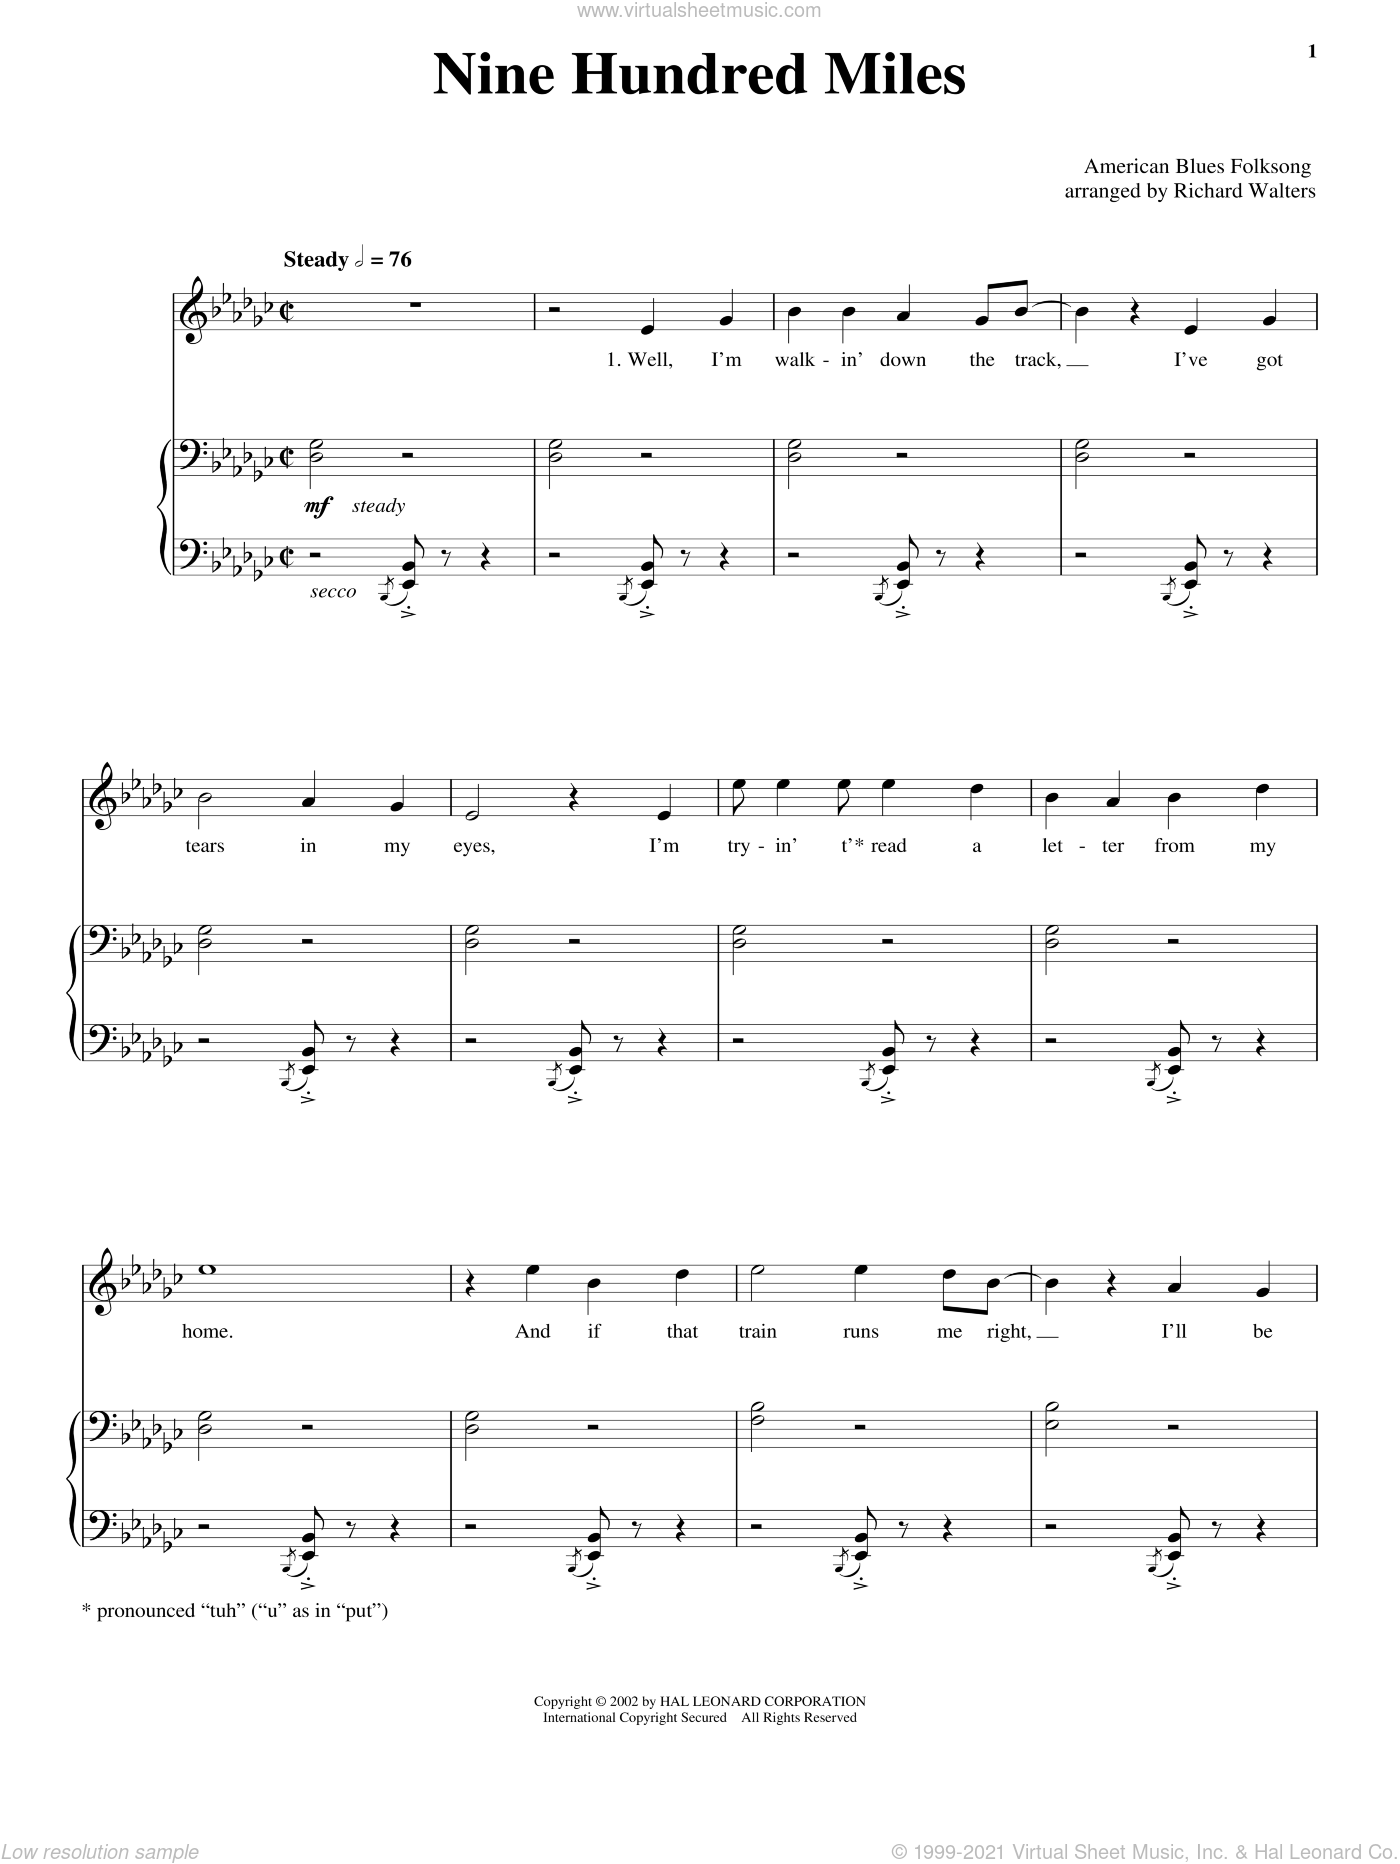 Nine Hundred Miles sheet music for voice, piano or guitar, intermediate skill level